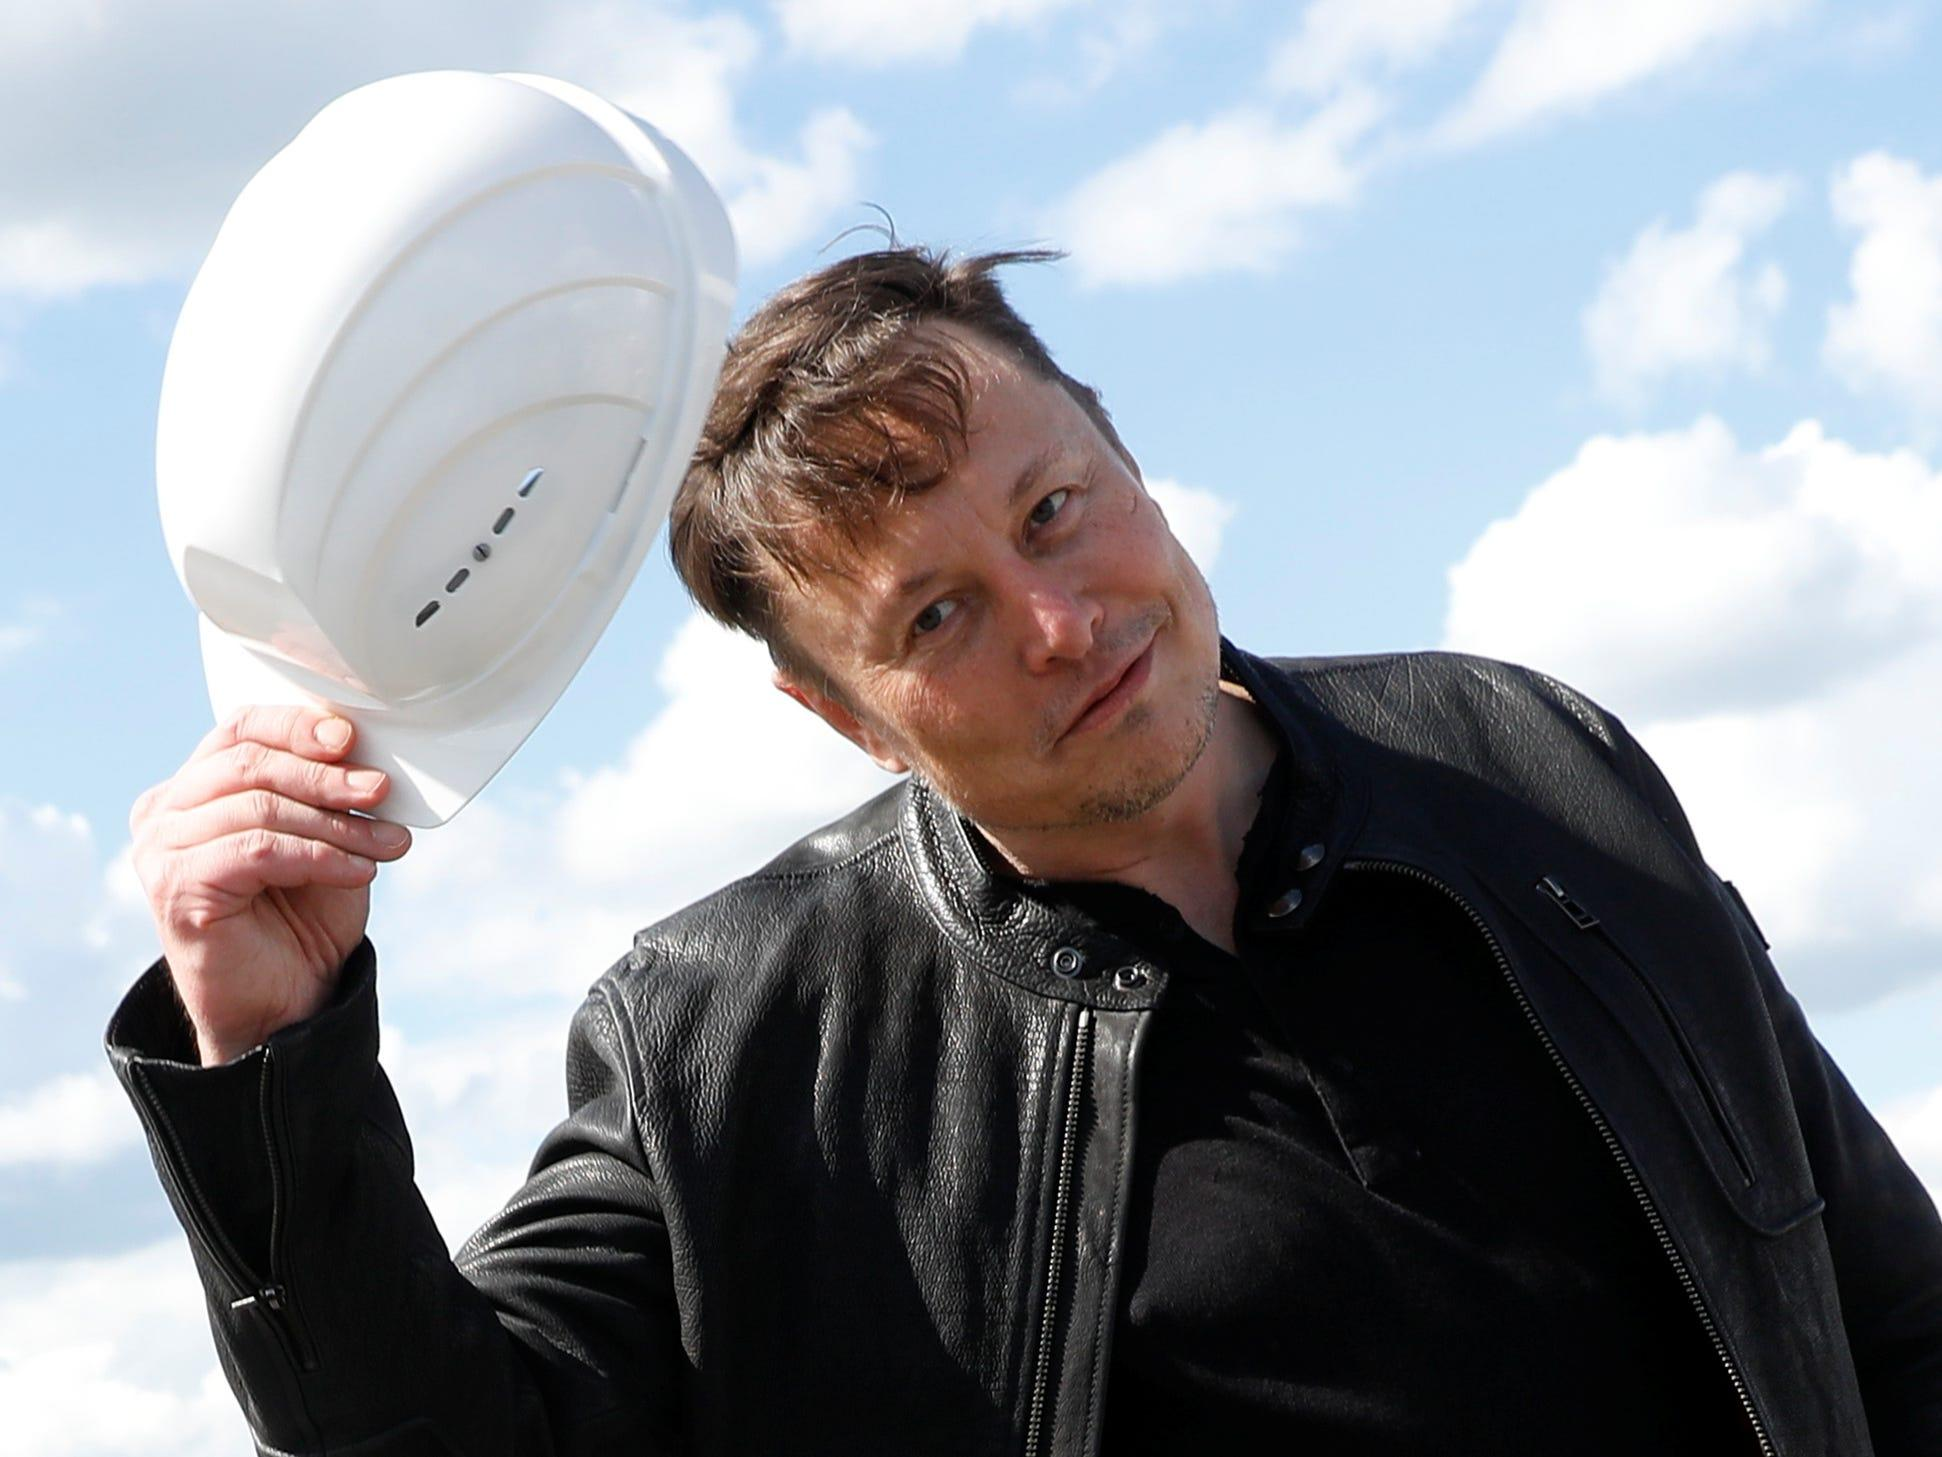 Elon Musk's Starlink satellite internet is acquiring a license to provide blanket coverage to Britain, the Telegraph says